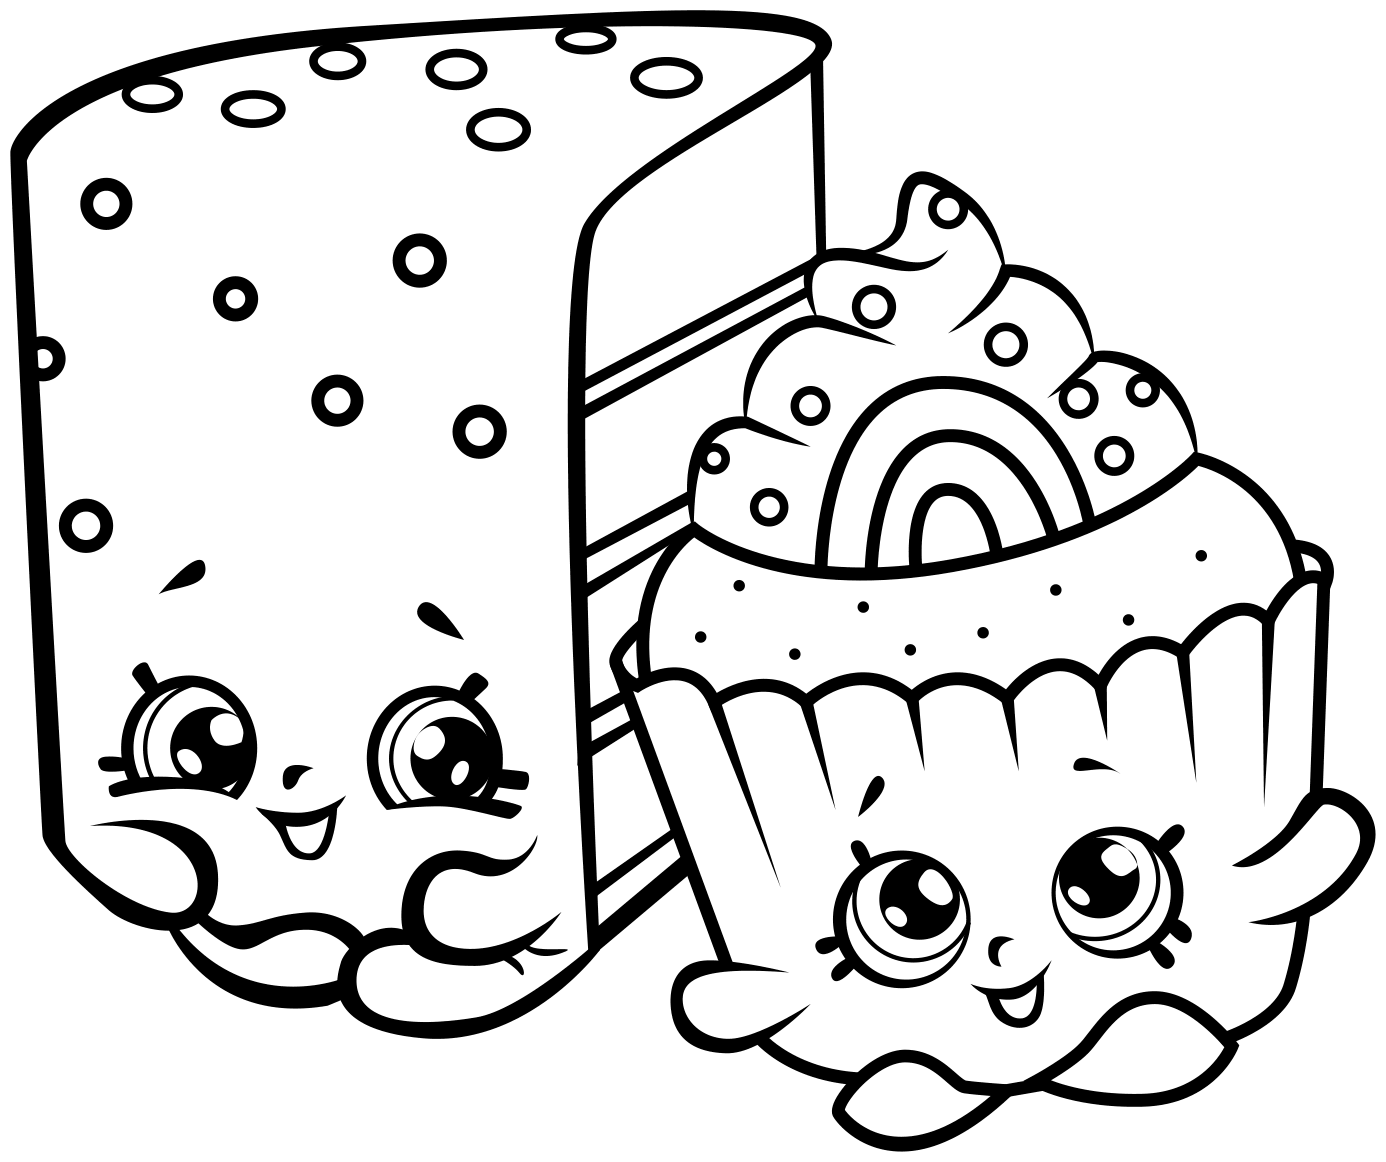 Shopkins Coloring Pages Best Coloring Pages For Kids Coloring Sheets